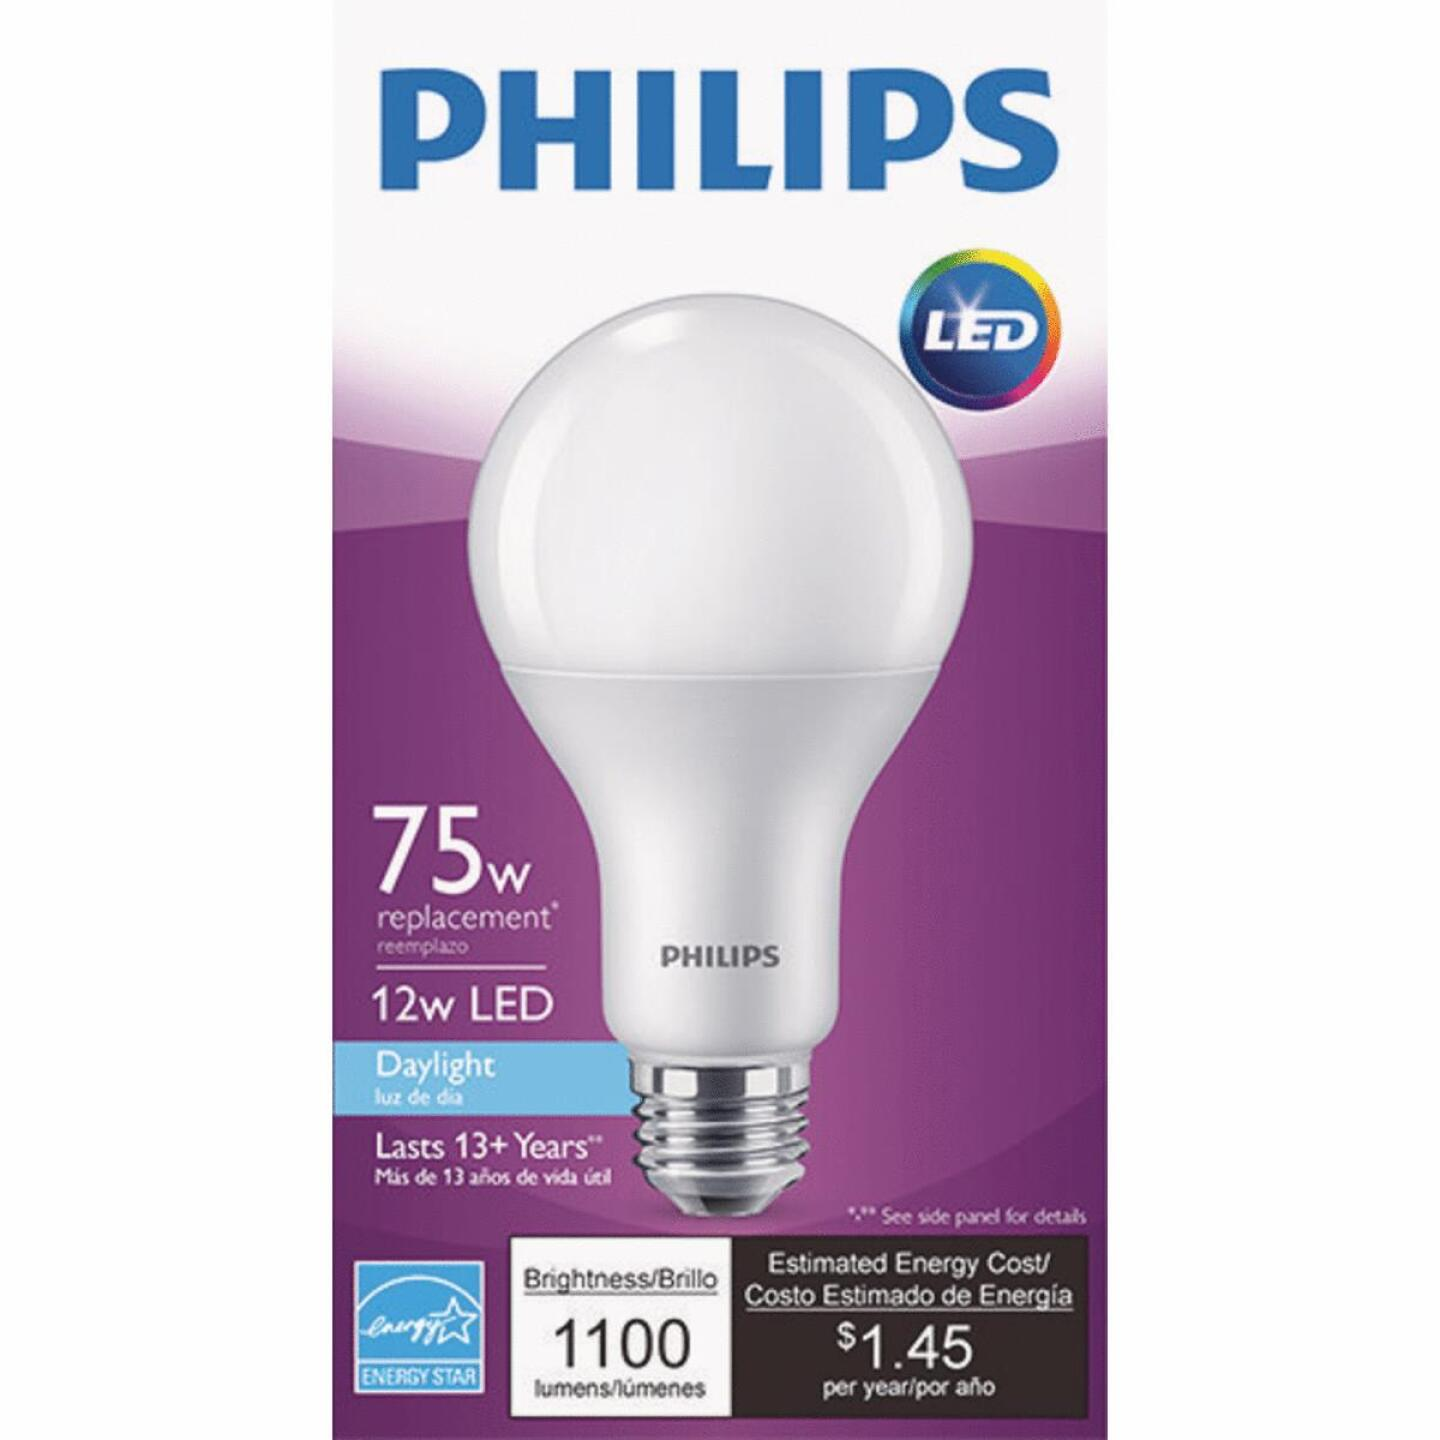 Philips 75W Equivalent Daylight A19 Medium Dimmable LED Light Bulb Image 2